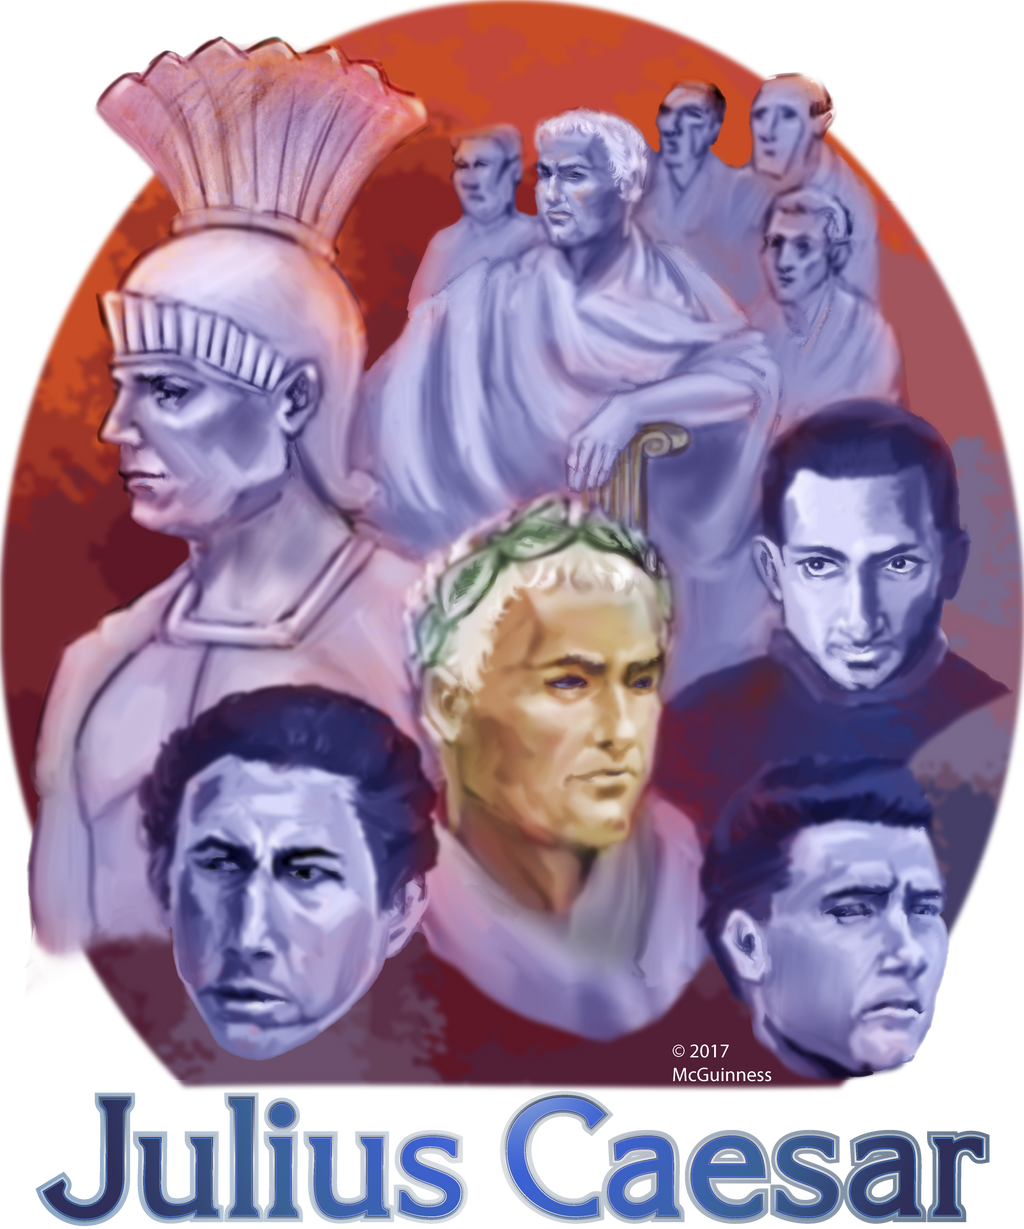 julius caesar 12 angry mn Julius caesar play essays in play, julius caesar, it has strength that makes the play a famous play in the play, we could understand characters emotion and behaviors clearly since it is in their own words instead of a narration.